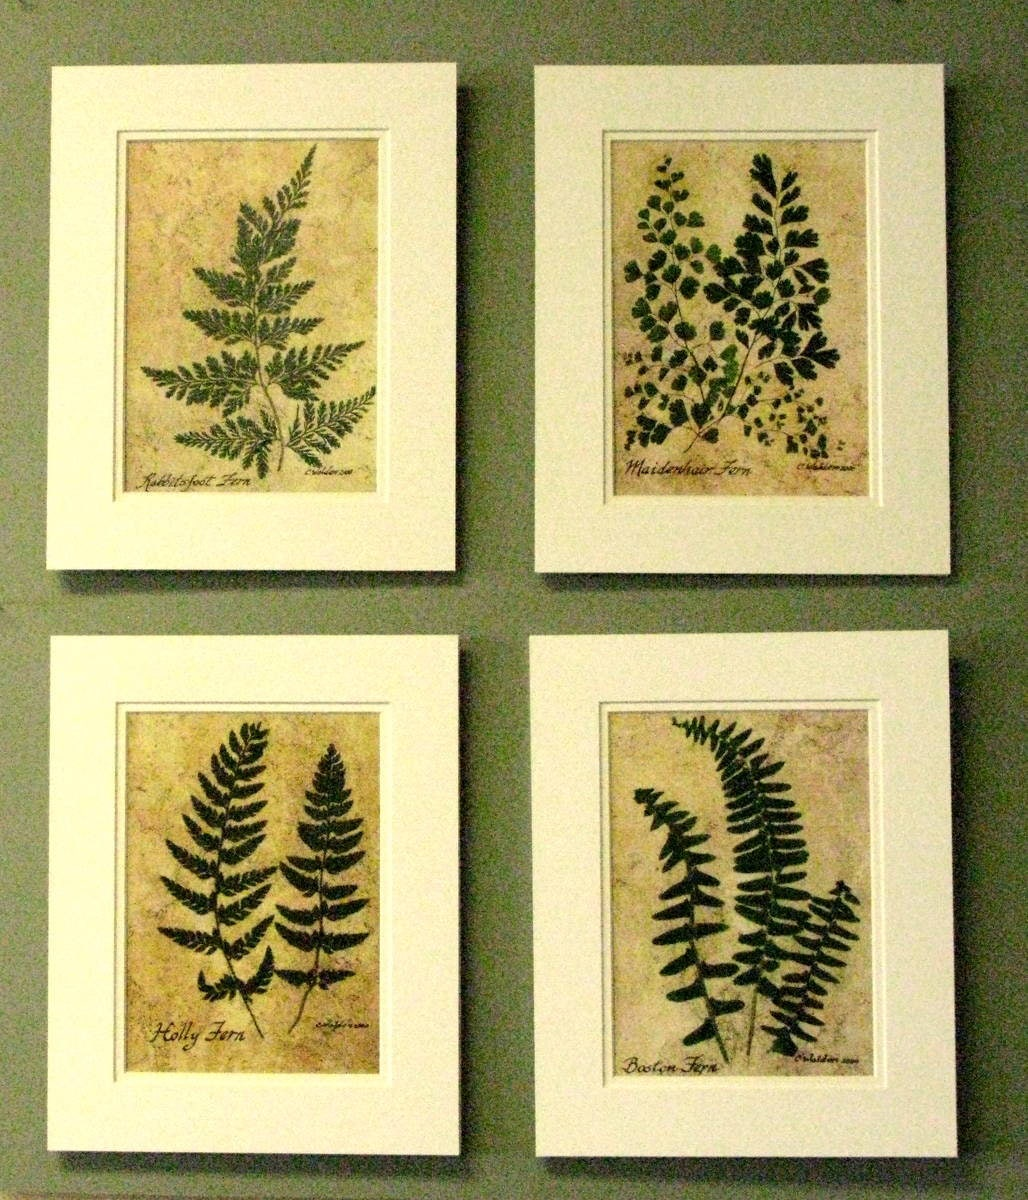 Famous Fern Wall Art Collection - All About Wallart - adelgazare.info